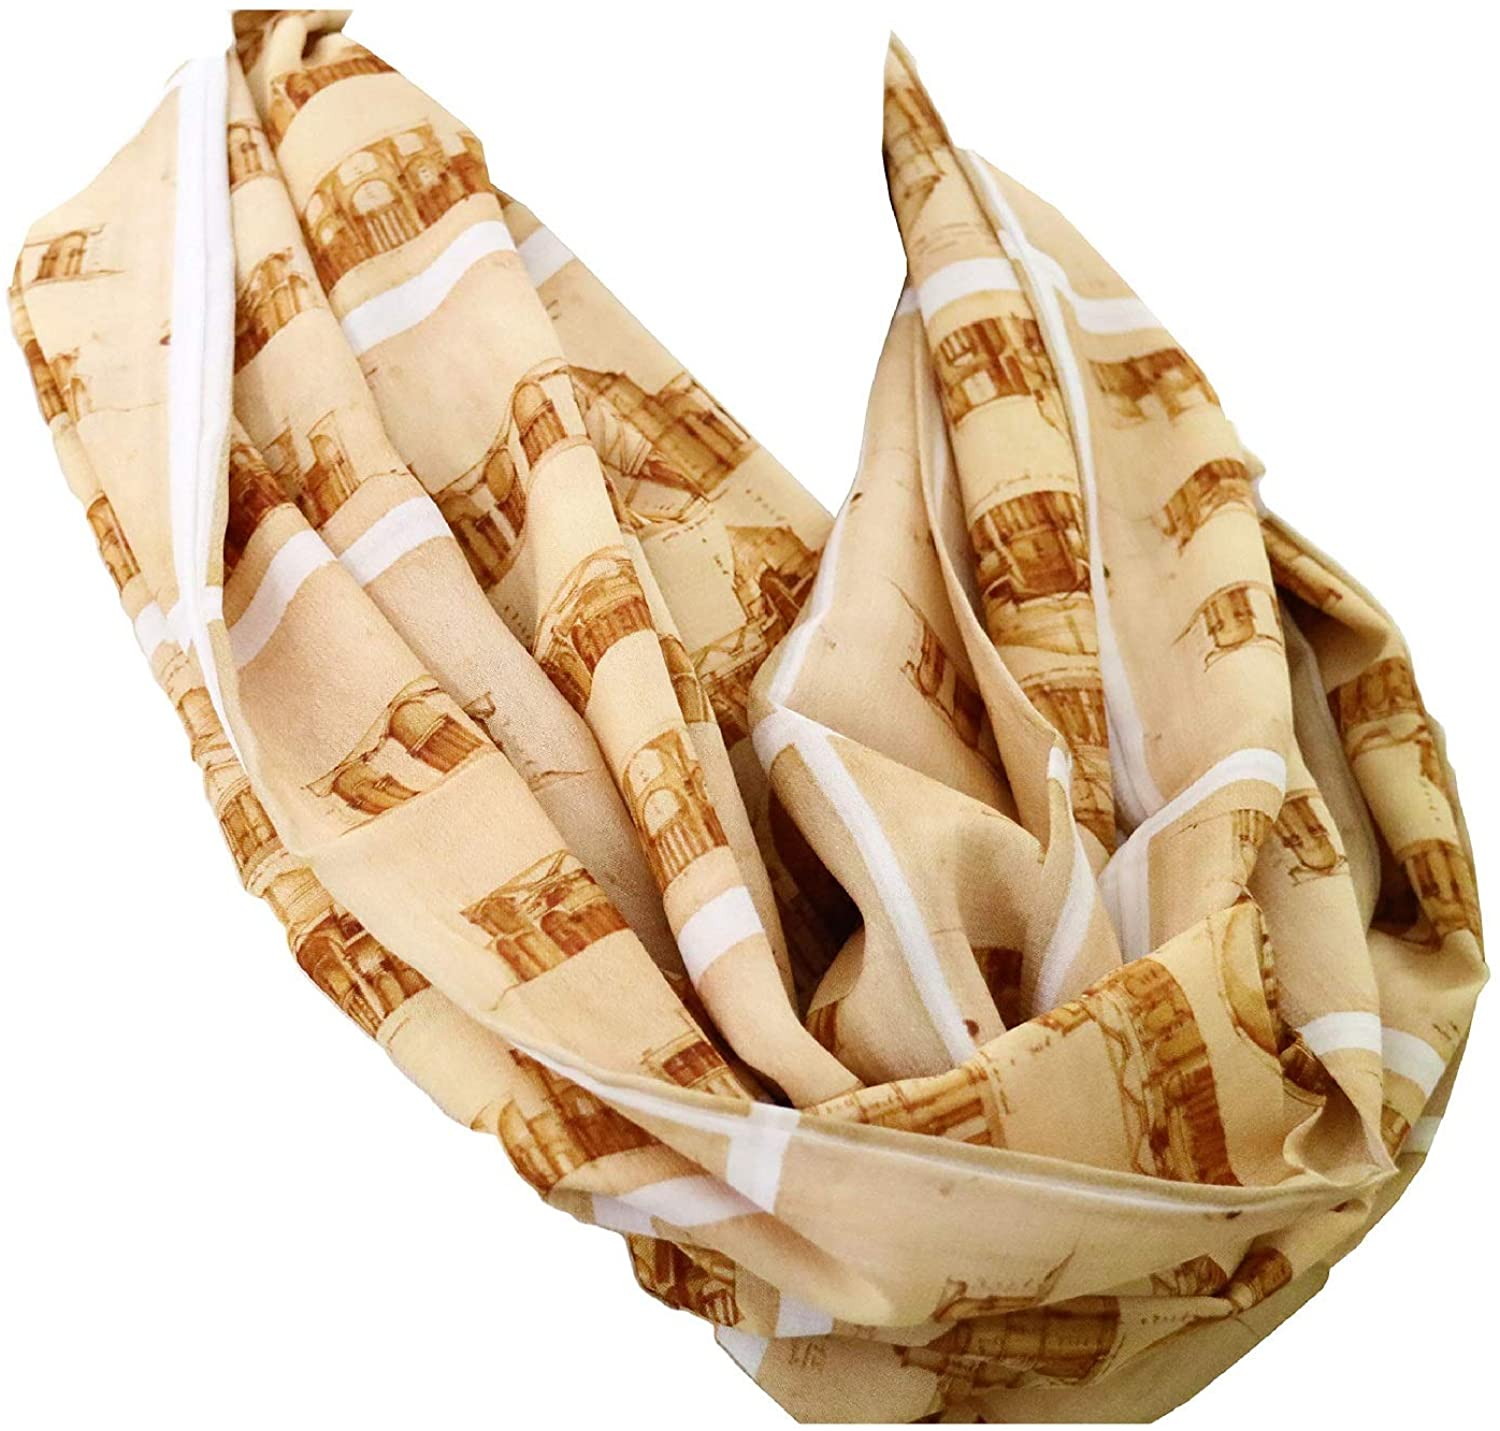 Vintage infinity scarf art history building Andrea Palladio architectural scarf birthday gift for her architect anniversary present